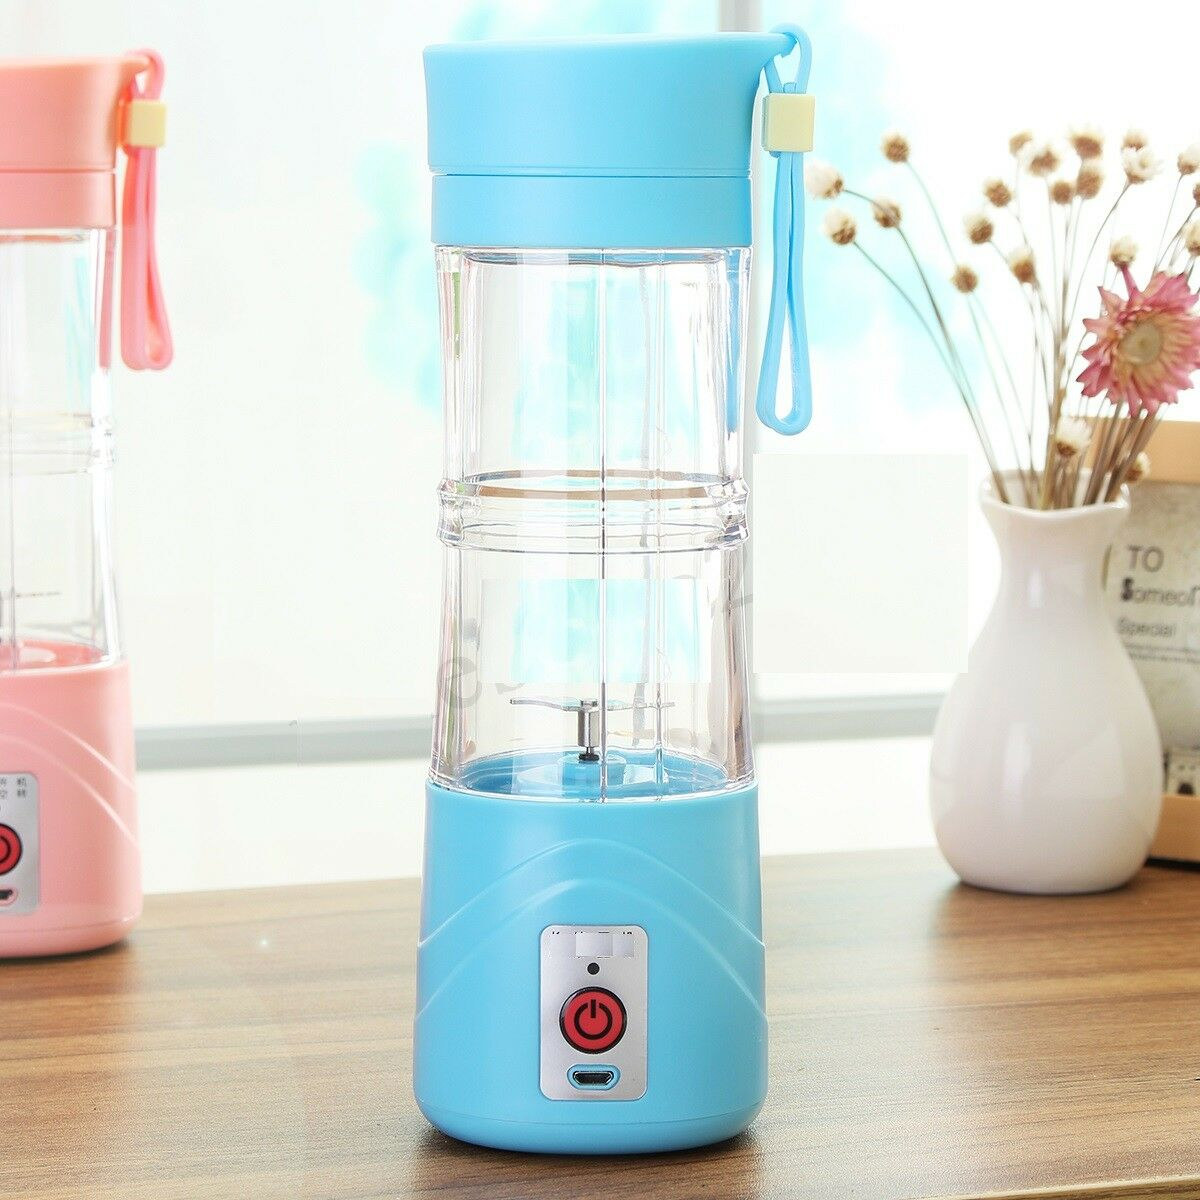 EHM Portable Personal Juicer Blender Cup Fruit Smoothie Mixer Maker Travel